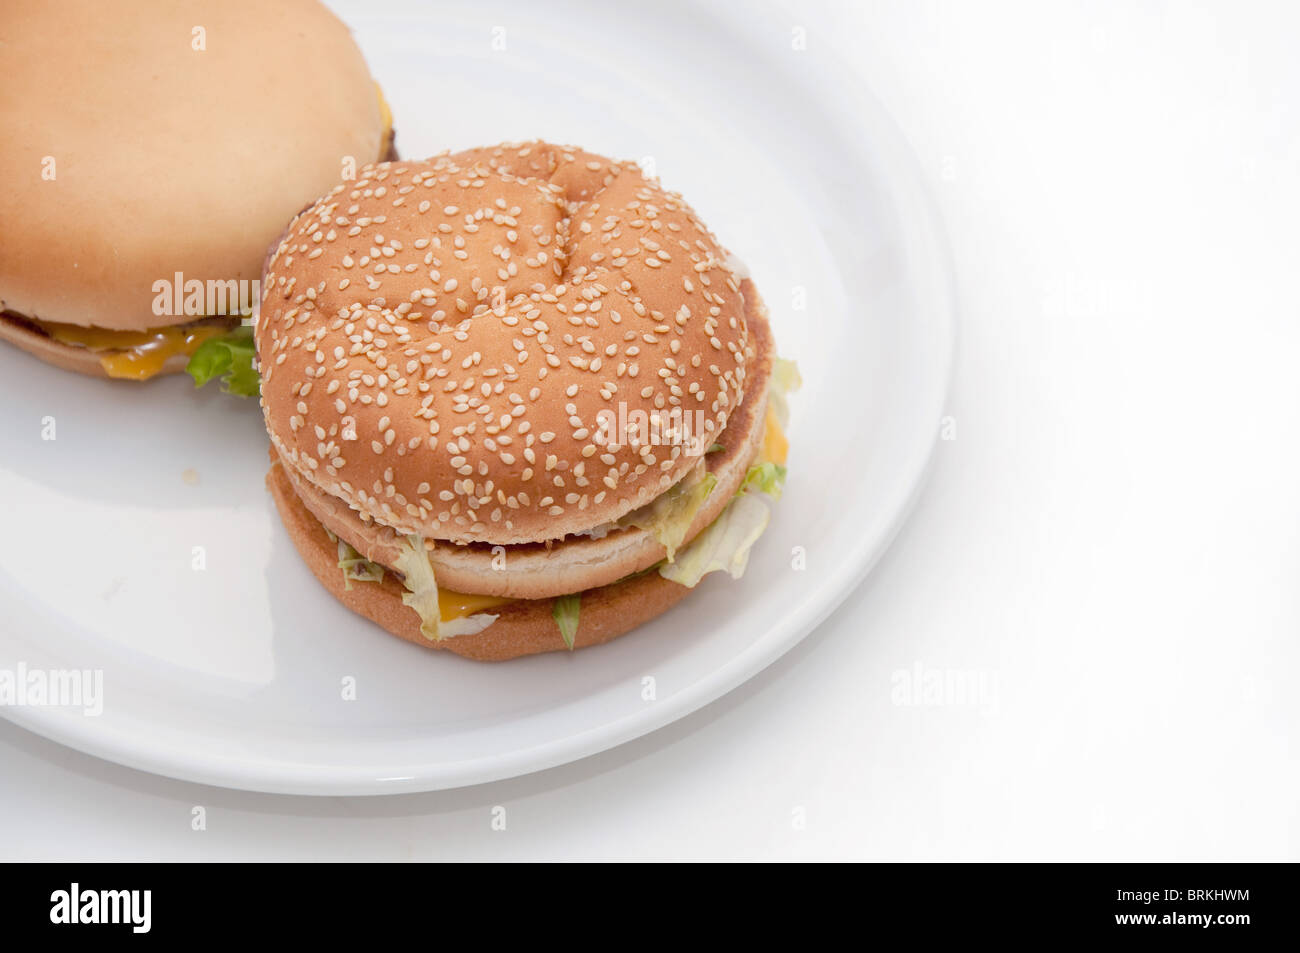 a tasty hamburger over white background. unhealthy junk food. - Stock Image